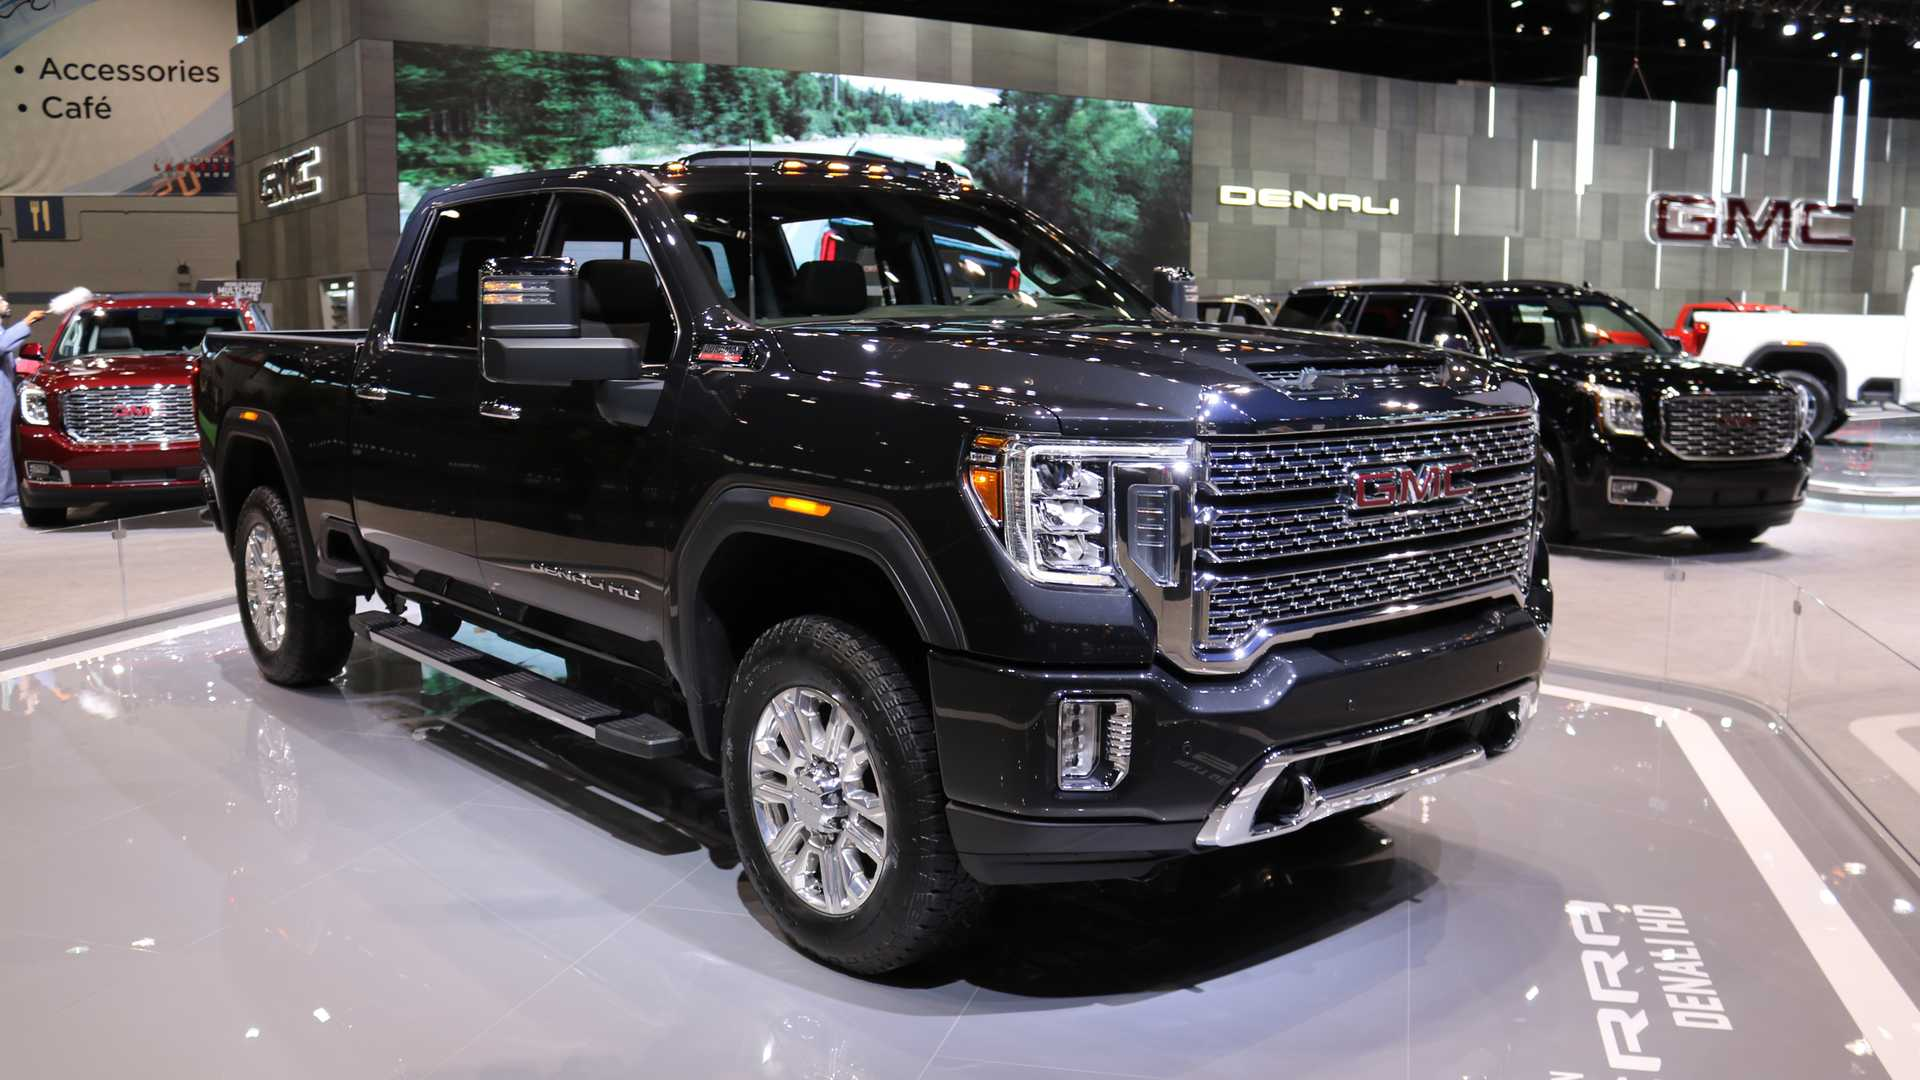 88 All New Gmc Diesel 2020 Images